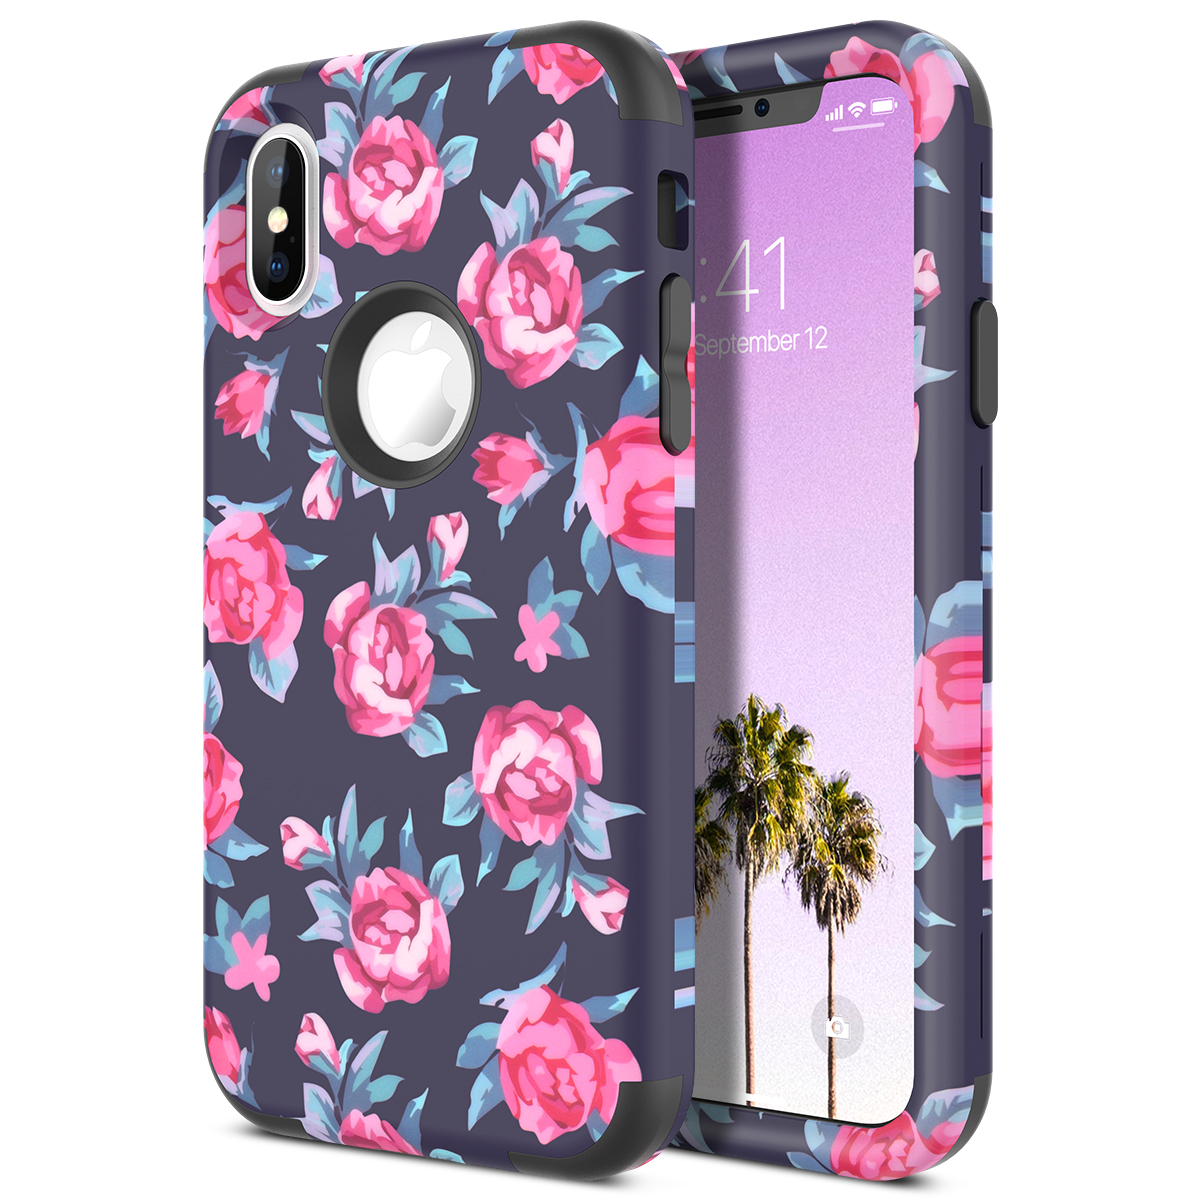 Luxury 3 In 1 Hard Case For Iphone XR Cover Flowers For Patterned Bumper PC Silicone Shockproof Cover For Iphone Xs X Max Case